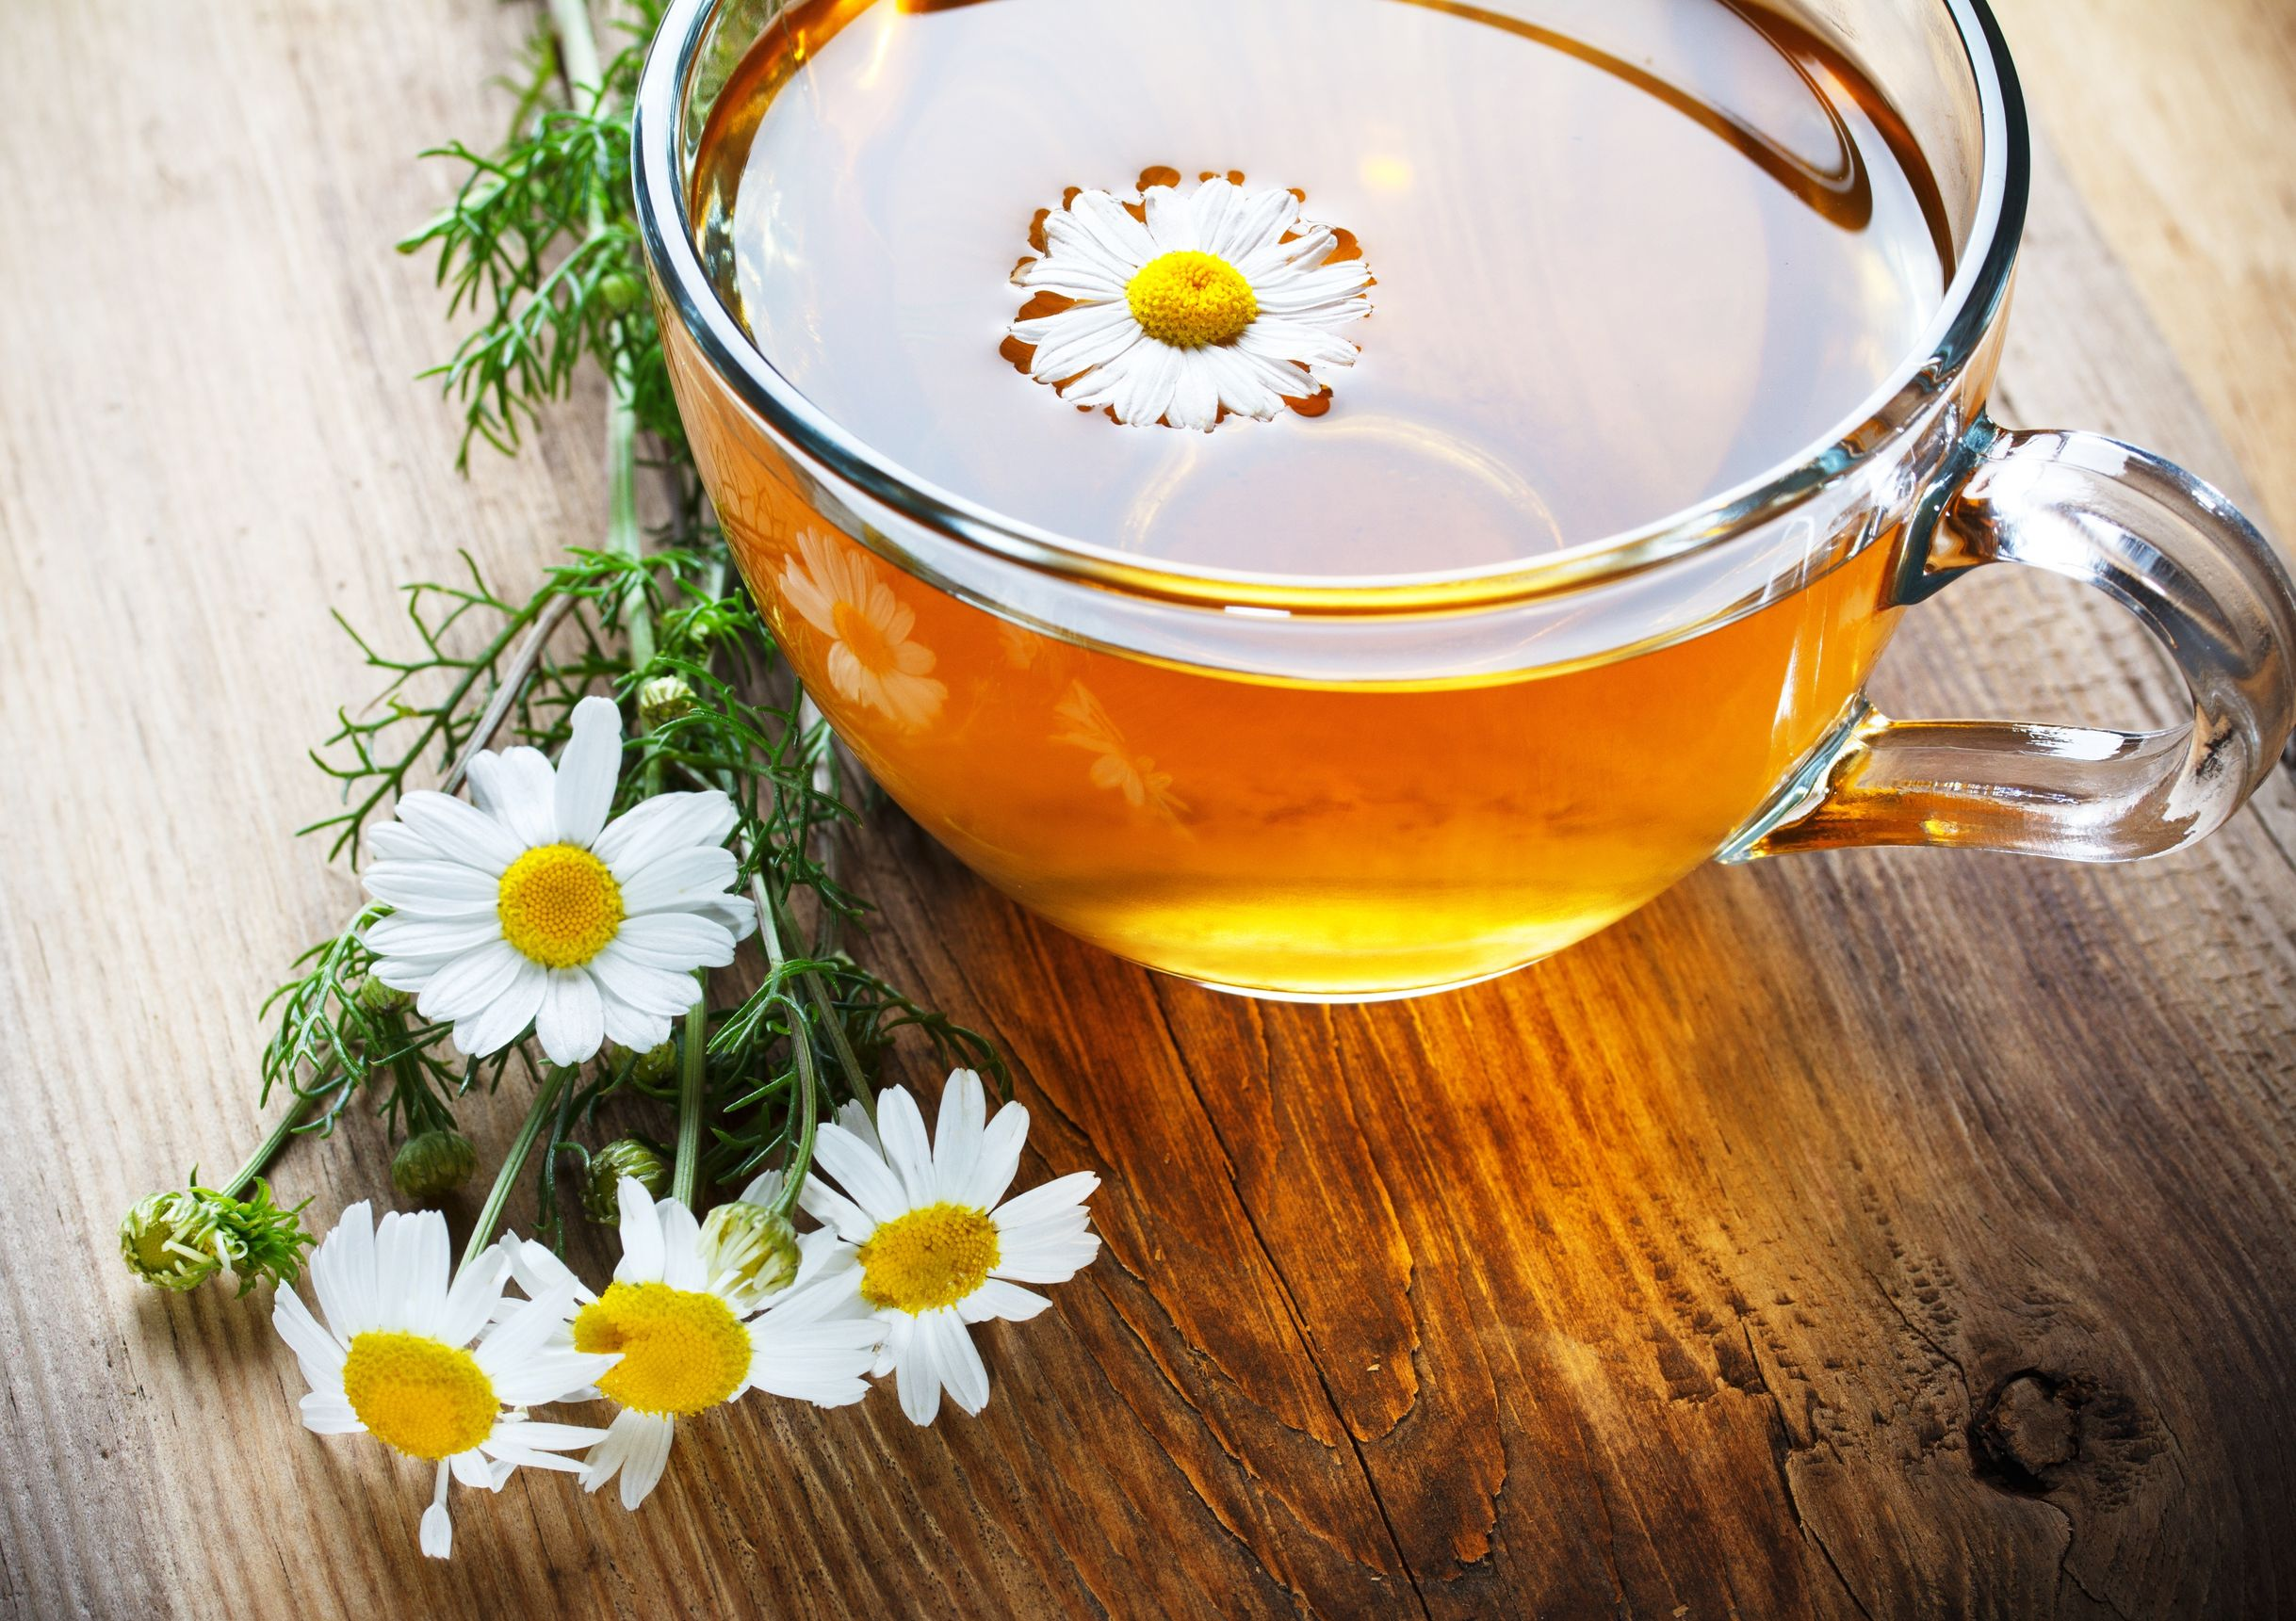 14 Effective Home Remedies For Sore Throat